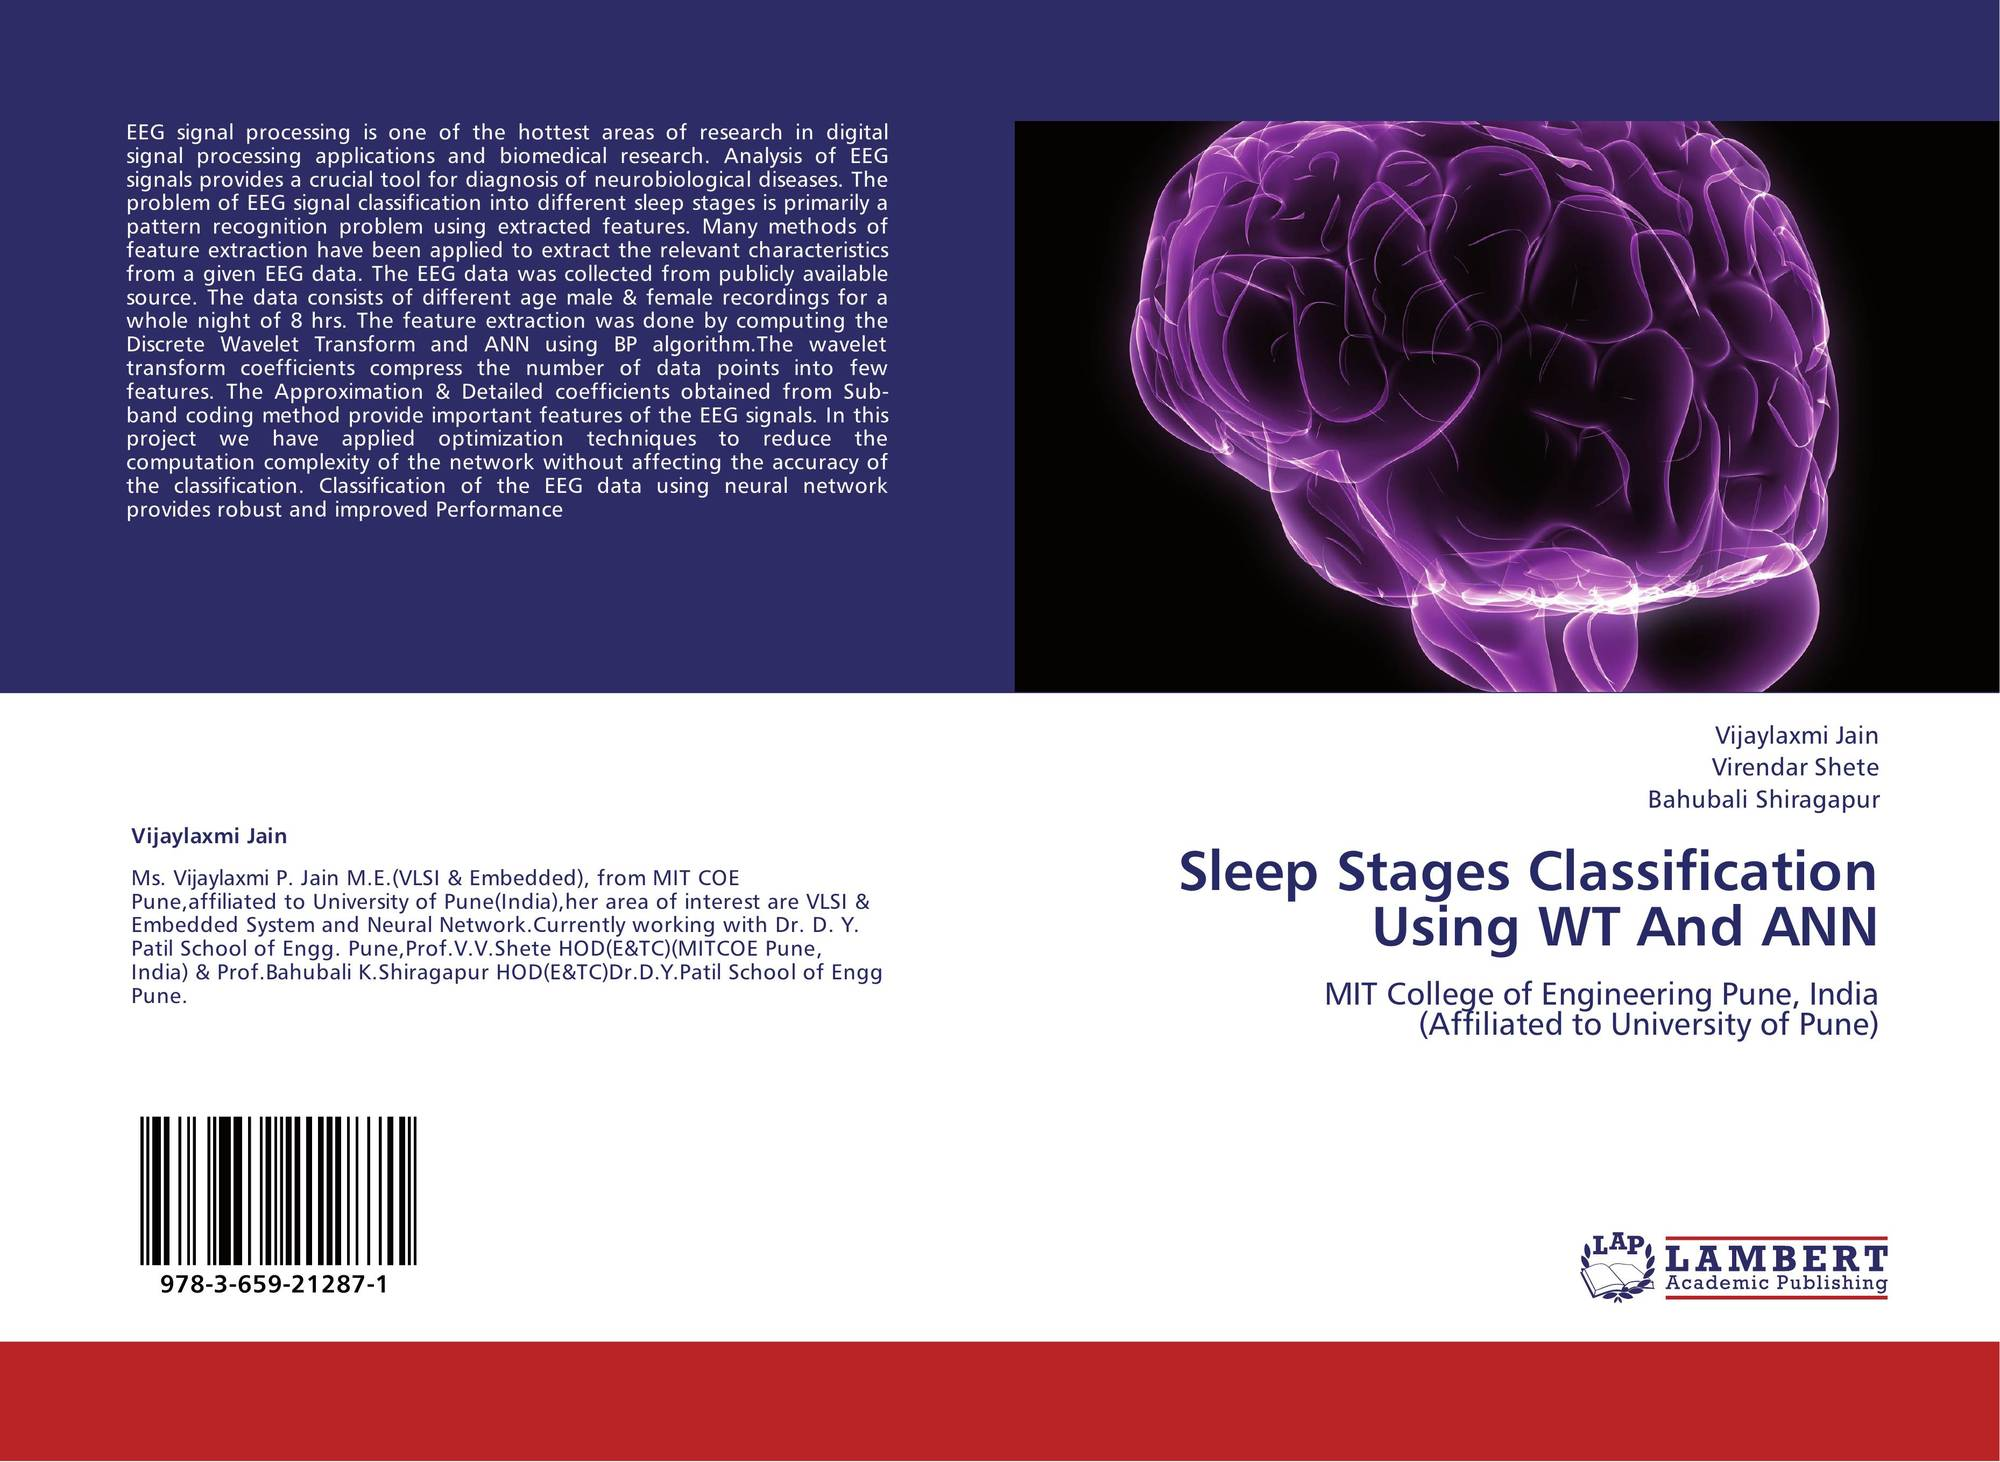 an analysis of the characteristics and functions of the different stages of sleep Psychsim 5: eeg and sleep stages name: kai-ting,chen section: s01 date: 2/11/10 this activity provides an explanation of the measurement of brain activity, as well as the presence of different sleep patterns and their respective functions.